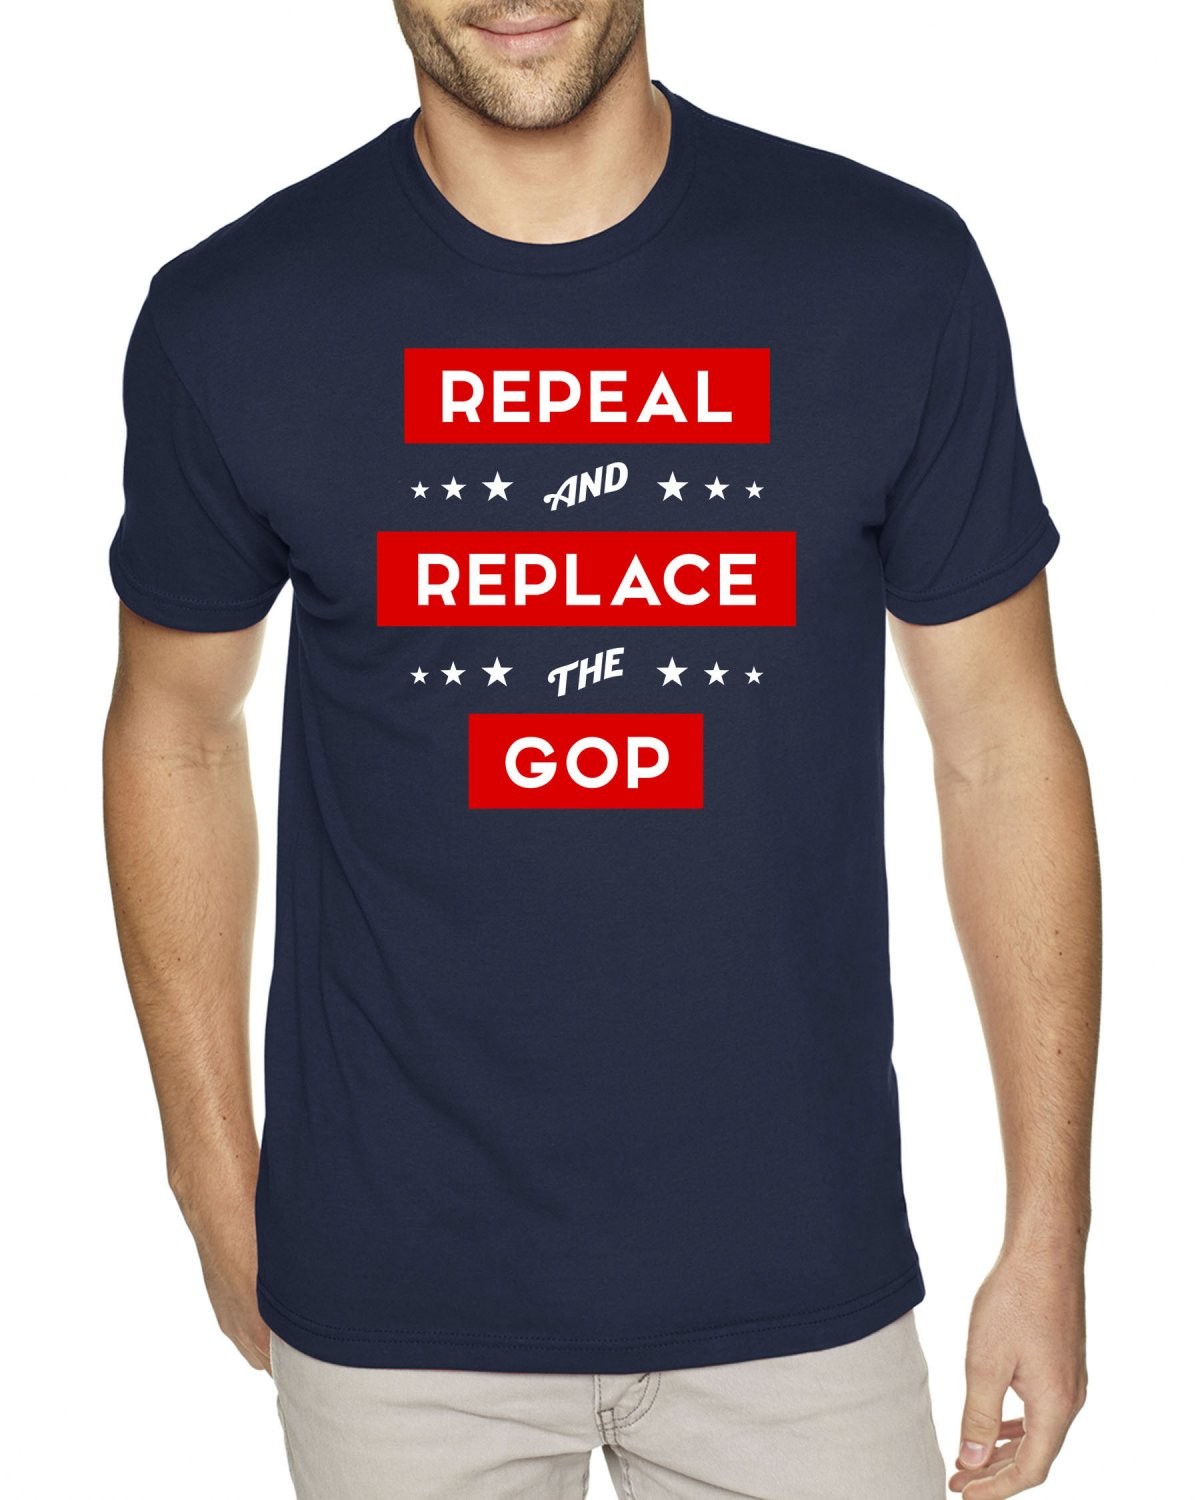 REPEAL AND REPLACE THE GOP - Premium Sueded Shirt SIZE 2XL